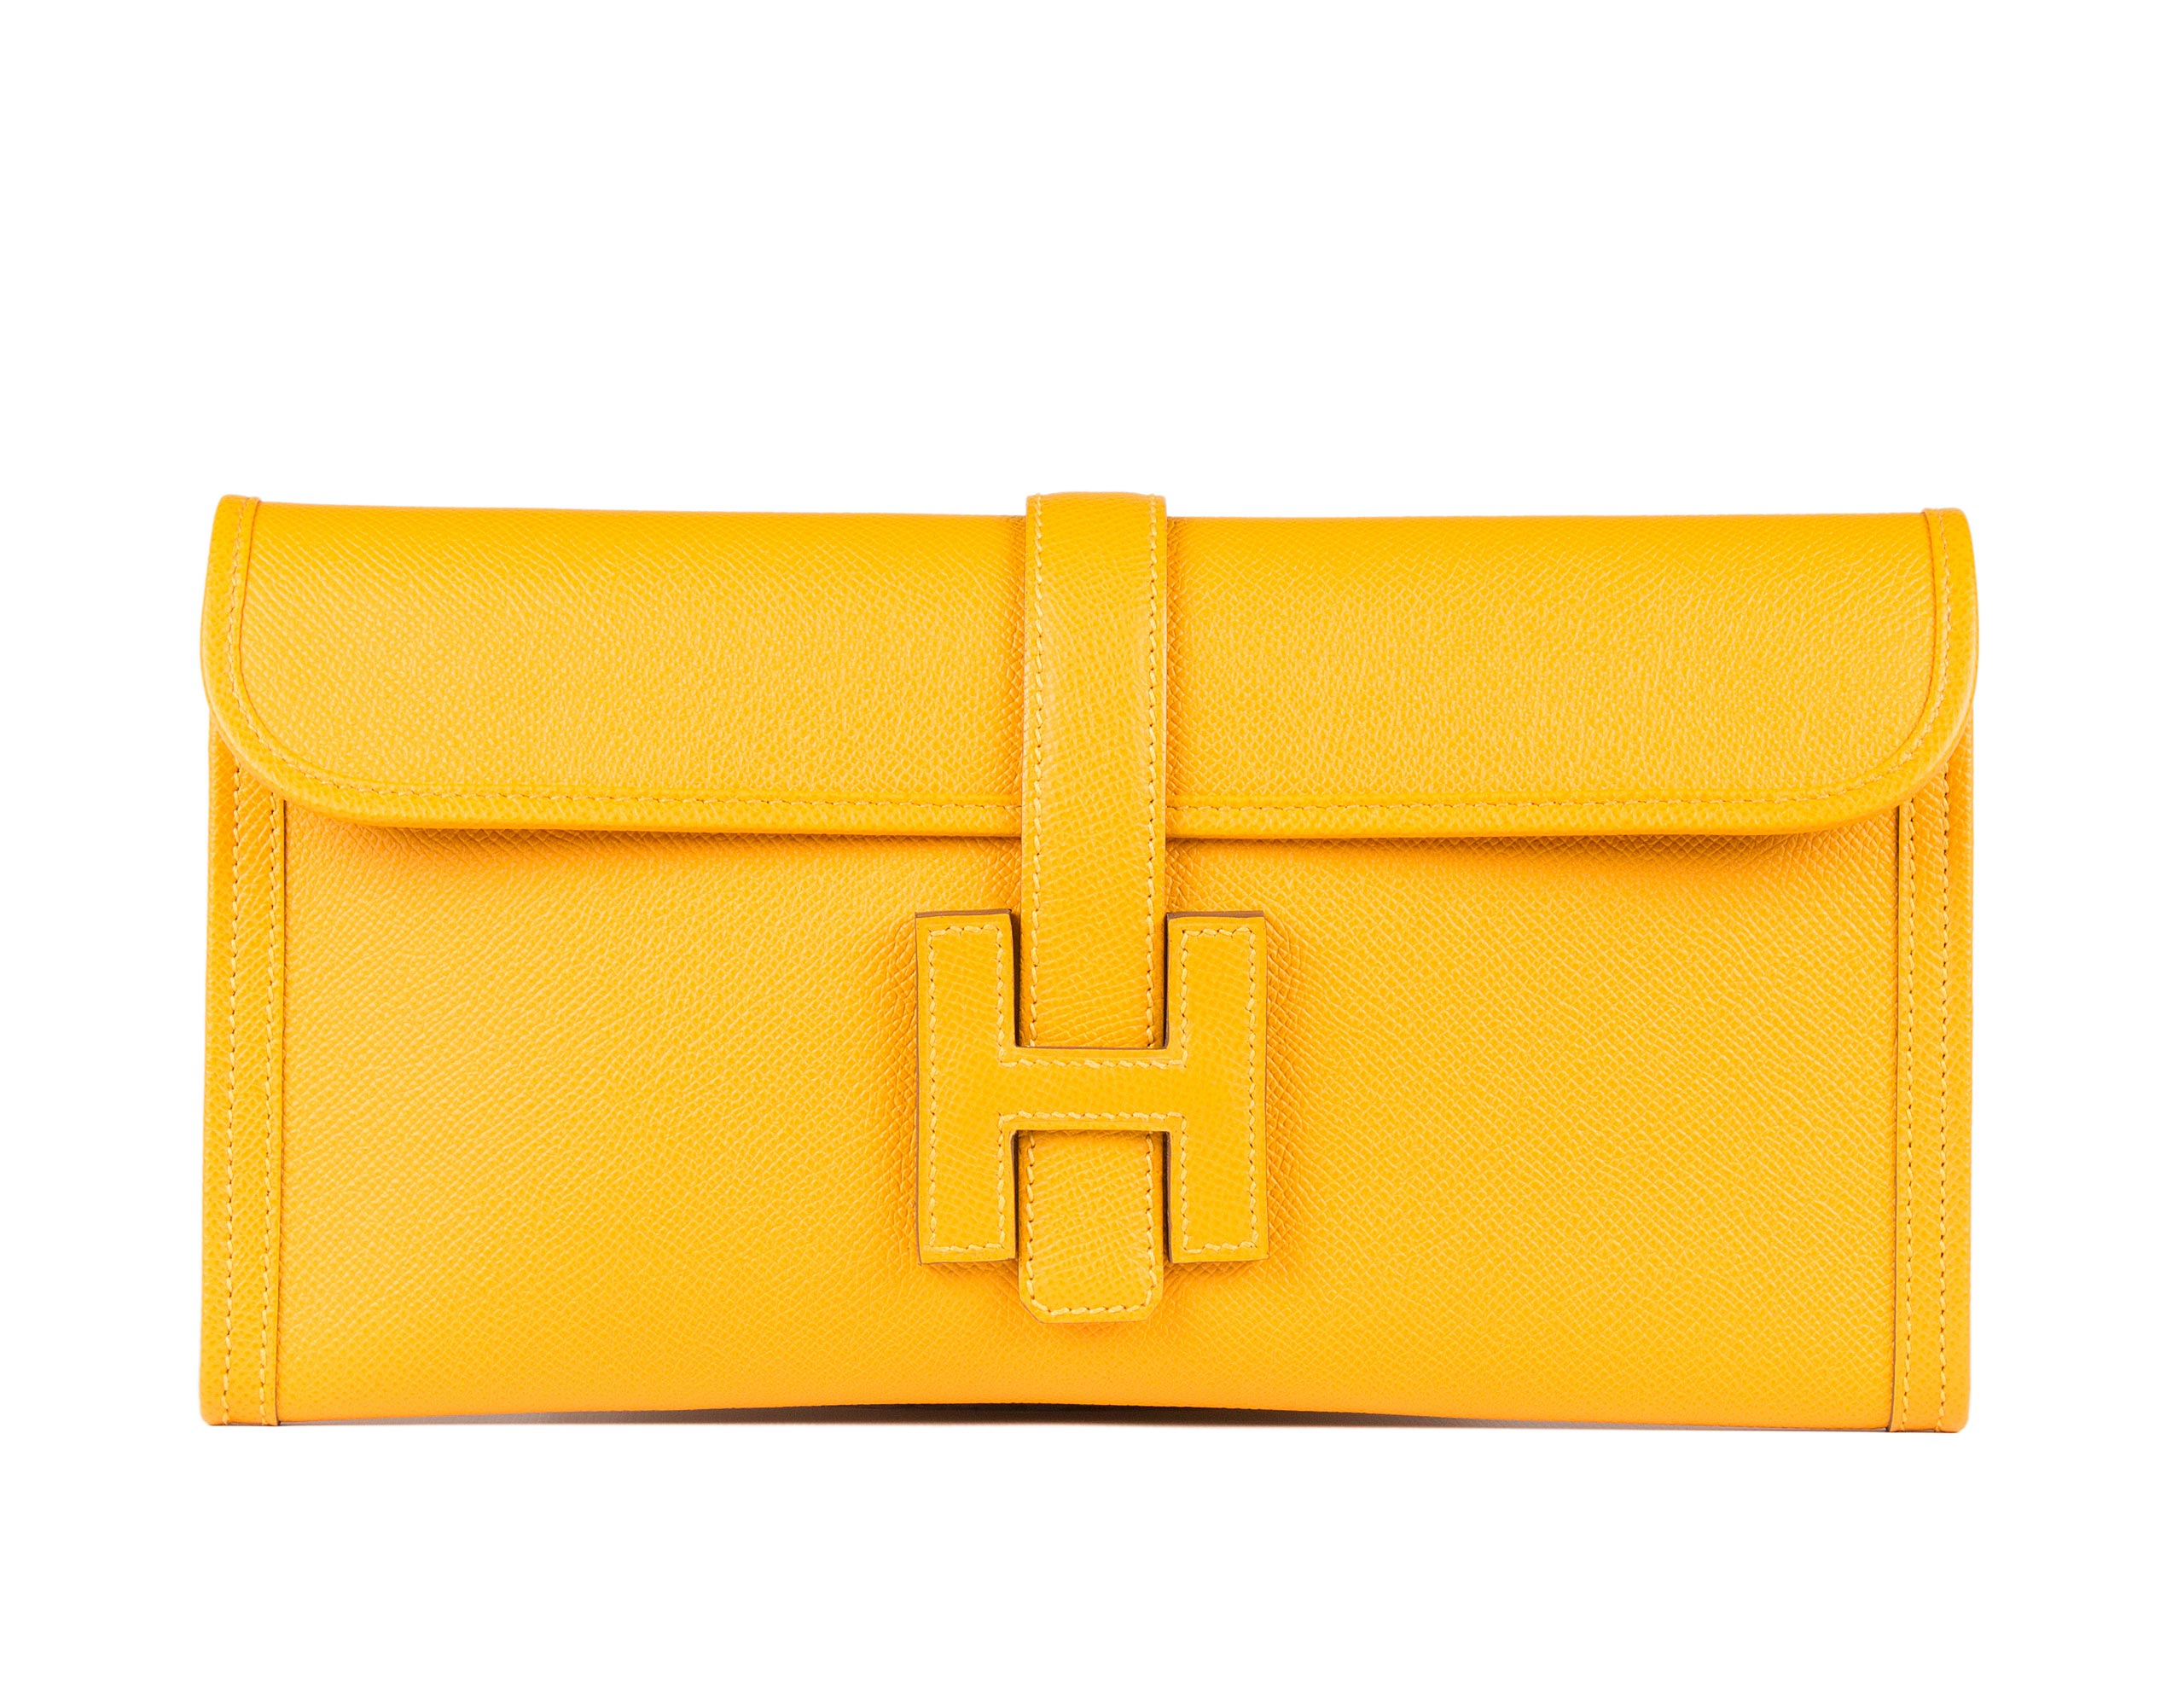 Hermes Jige Bag, Jaune, 29cm, Epsom - Bags of Luxury